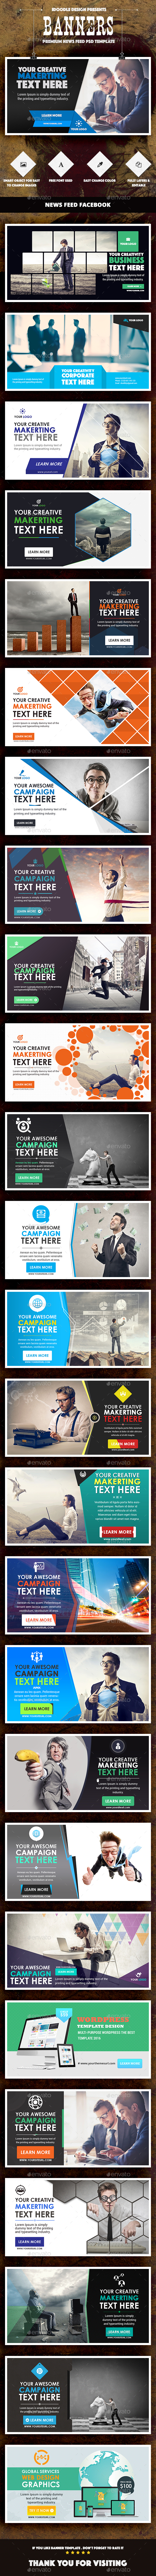 News Feed Multipurpose Banners Ads - 27 PSD - Banners & Ads Web Elements